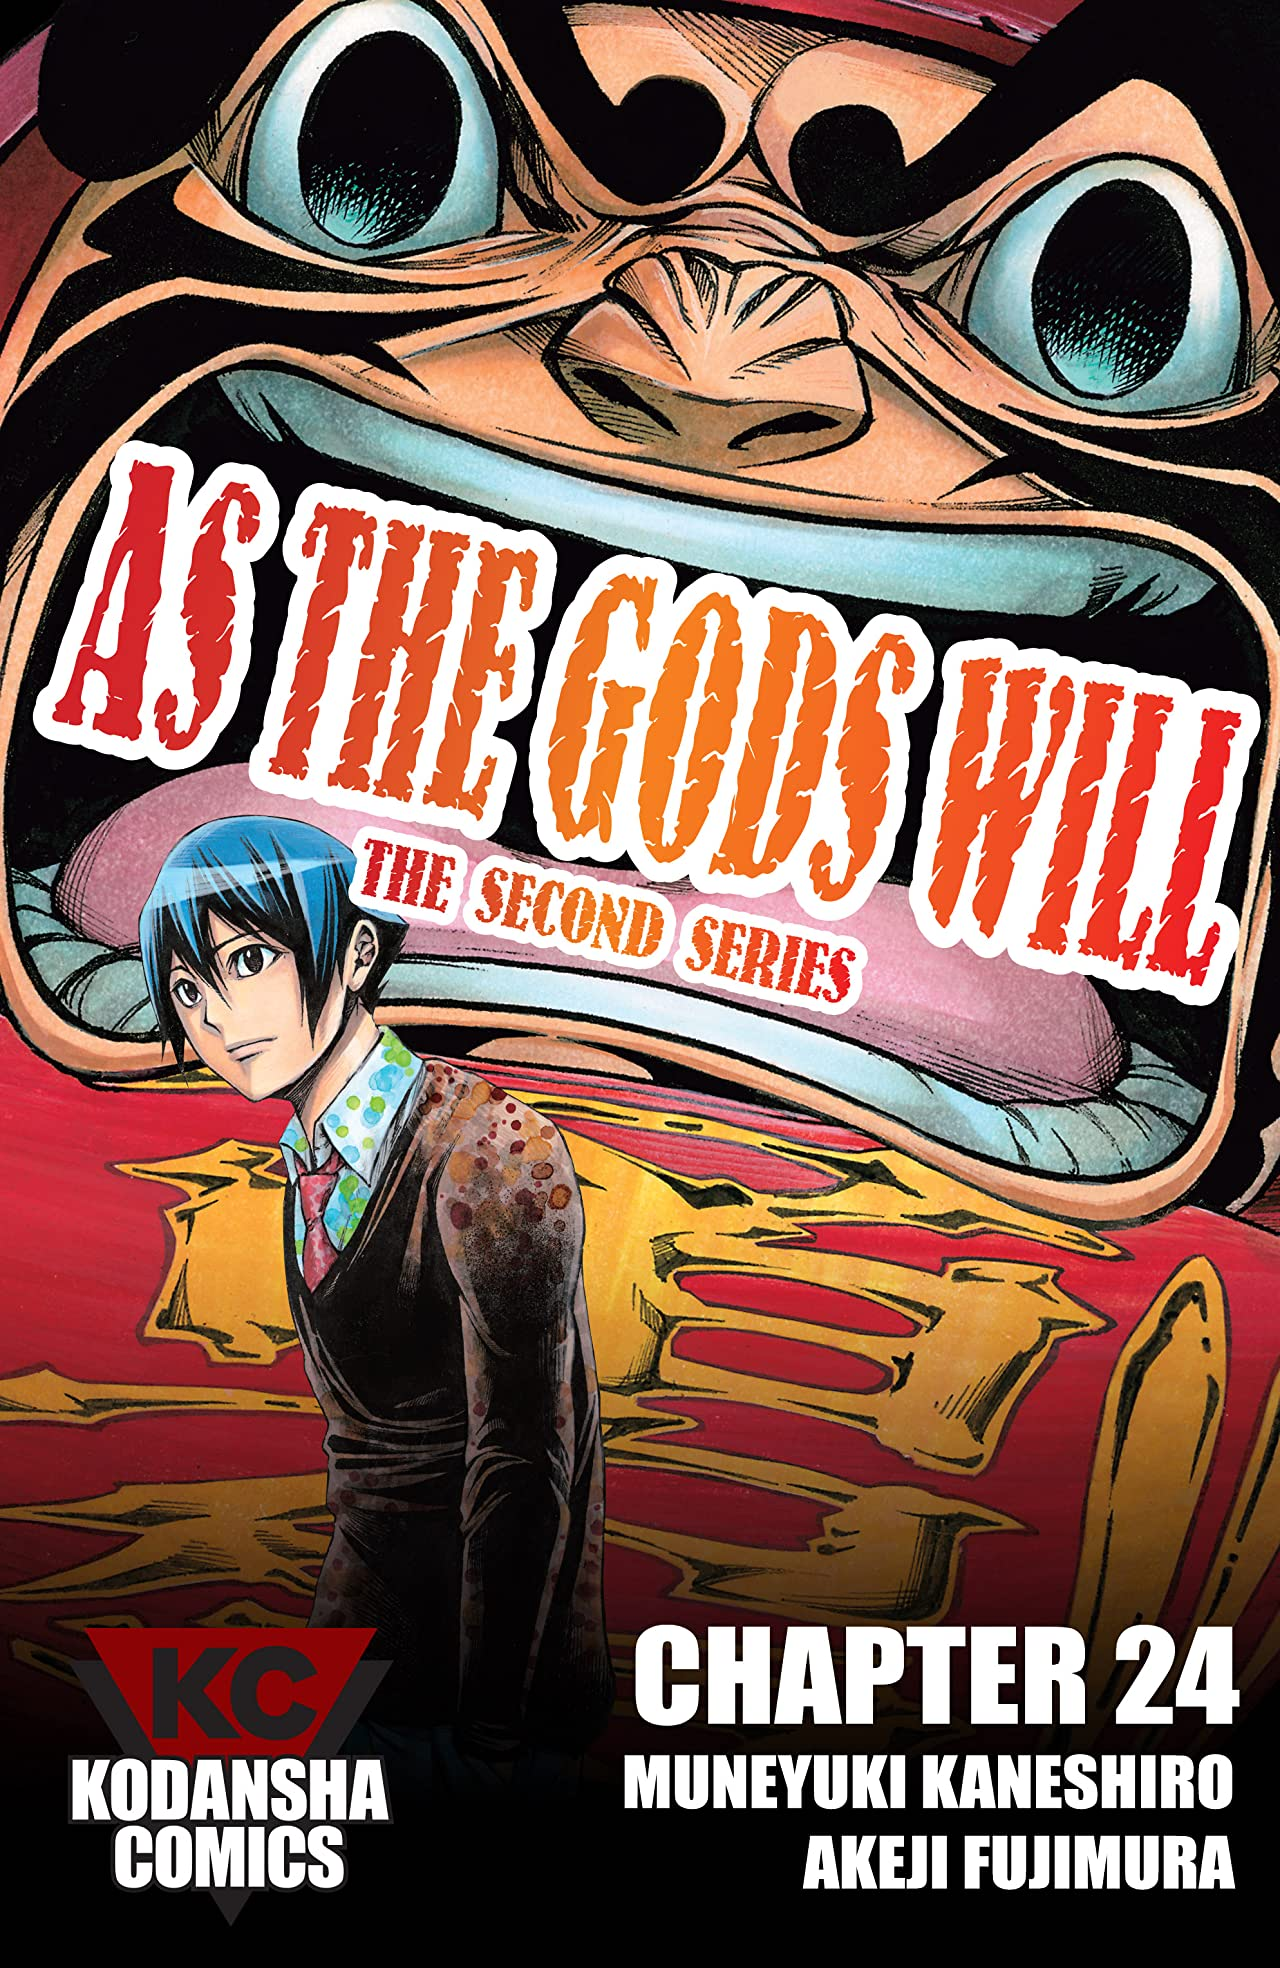 As The Gods Will: The Second Series #24